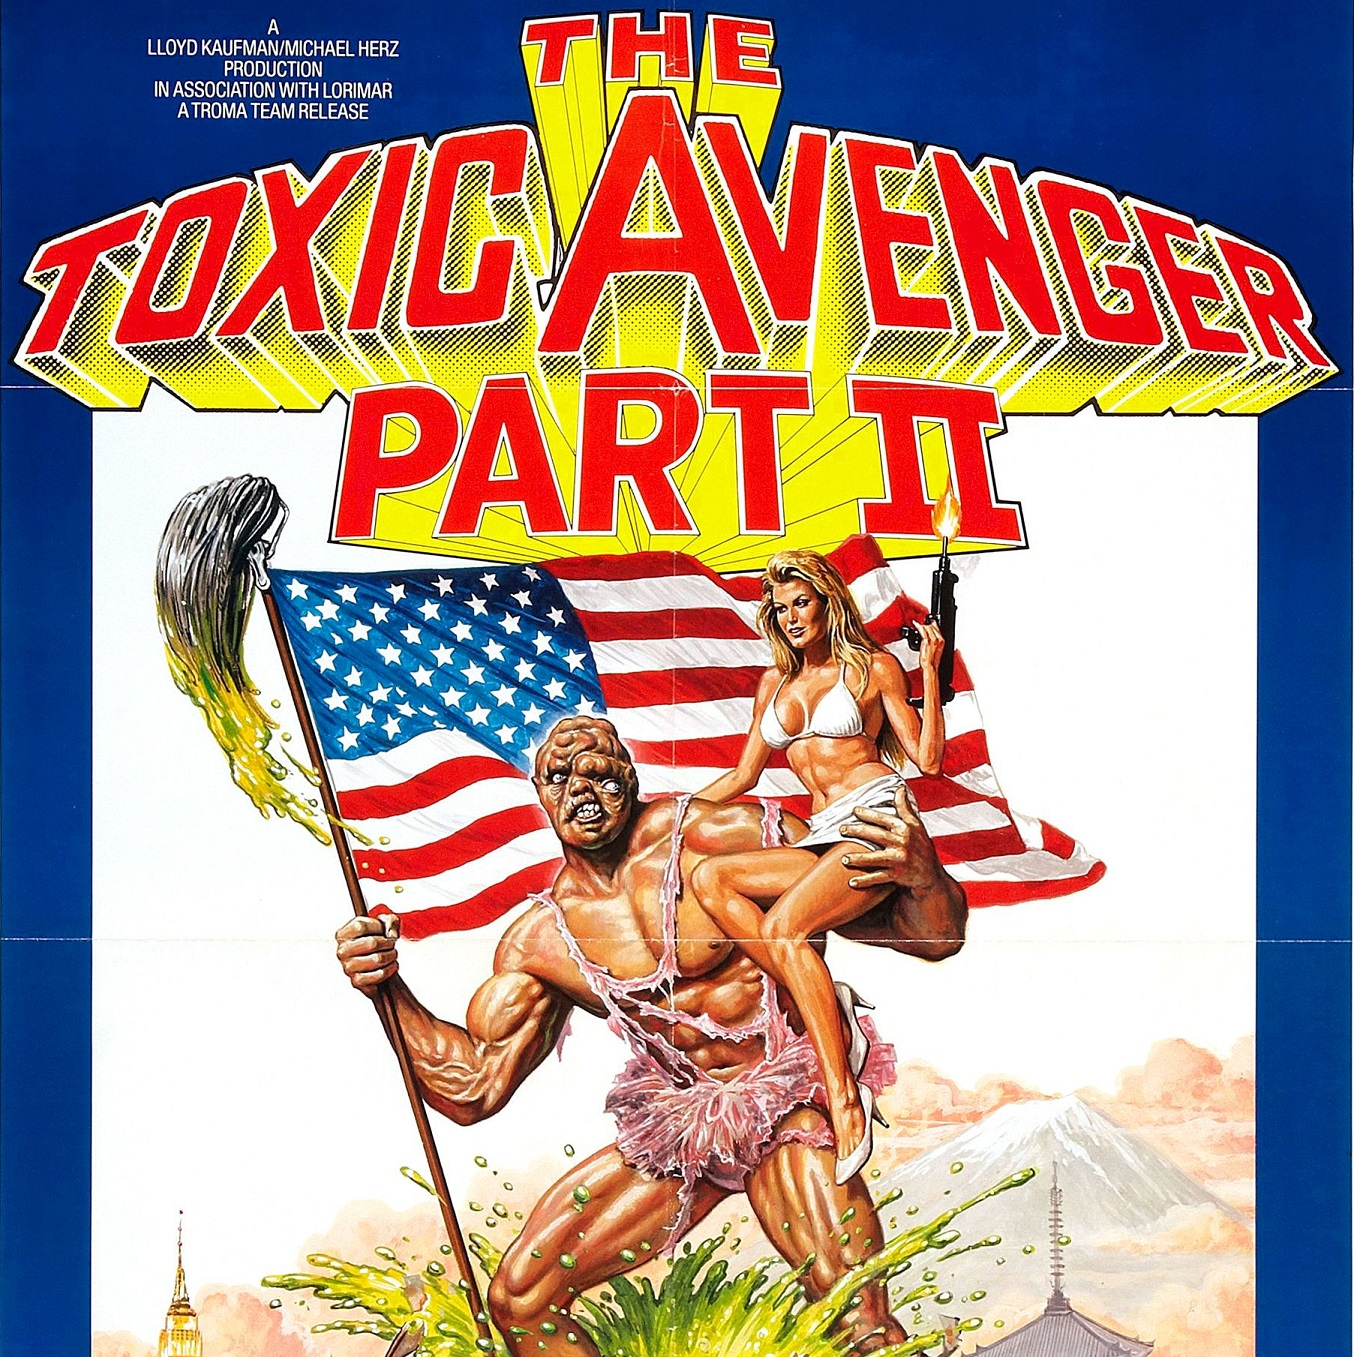 Episode 73 – The Toxic Avenger Part II